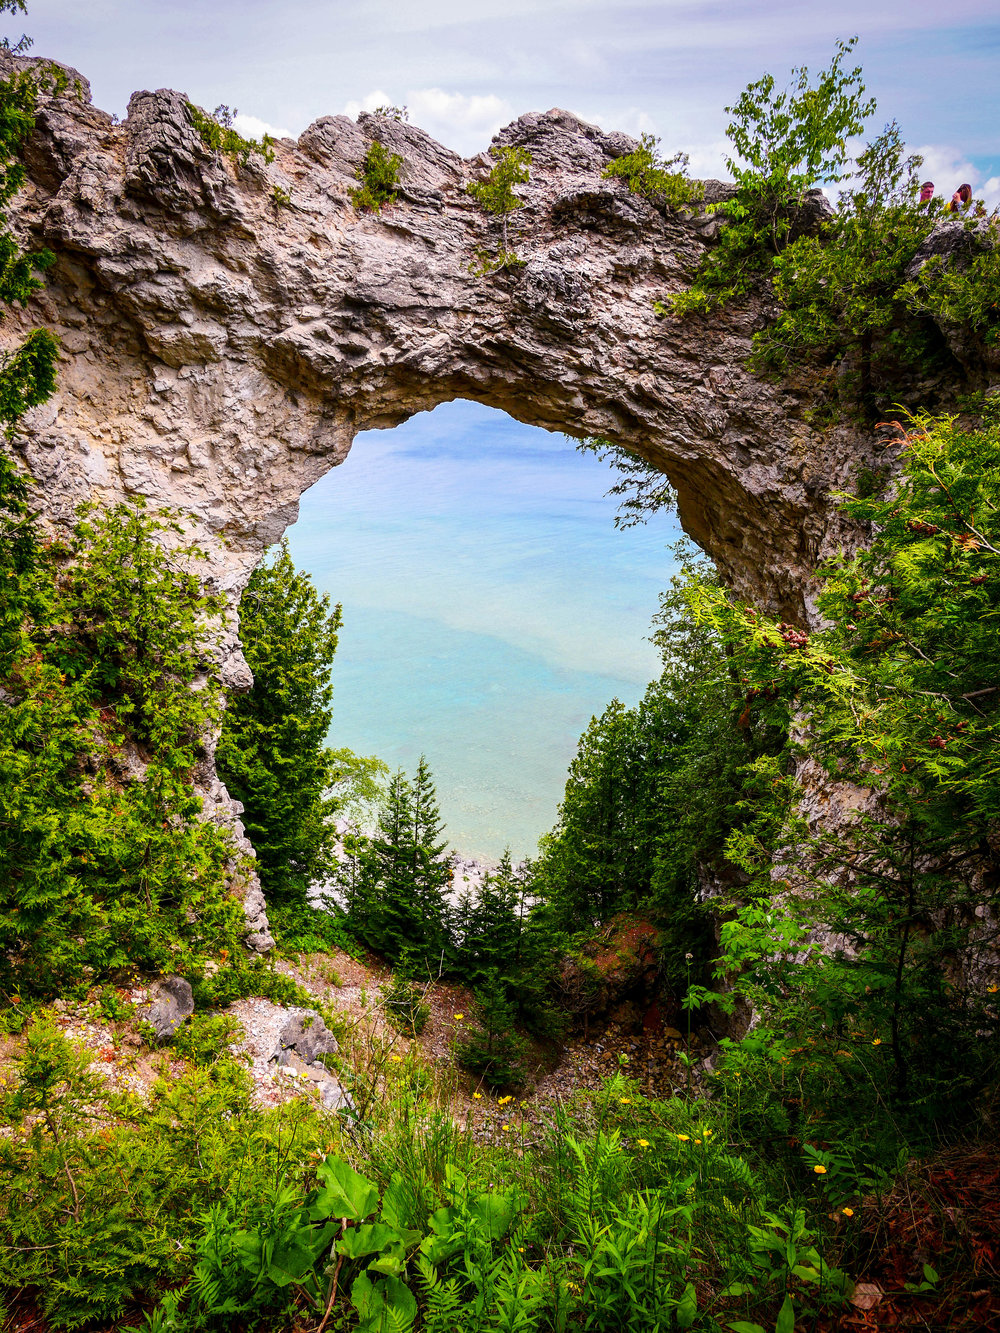 The natural arch at Mackinac Island is one of numerous tourist attractions on this adorable island in Lake Huron.